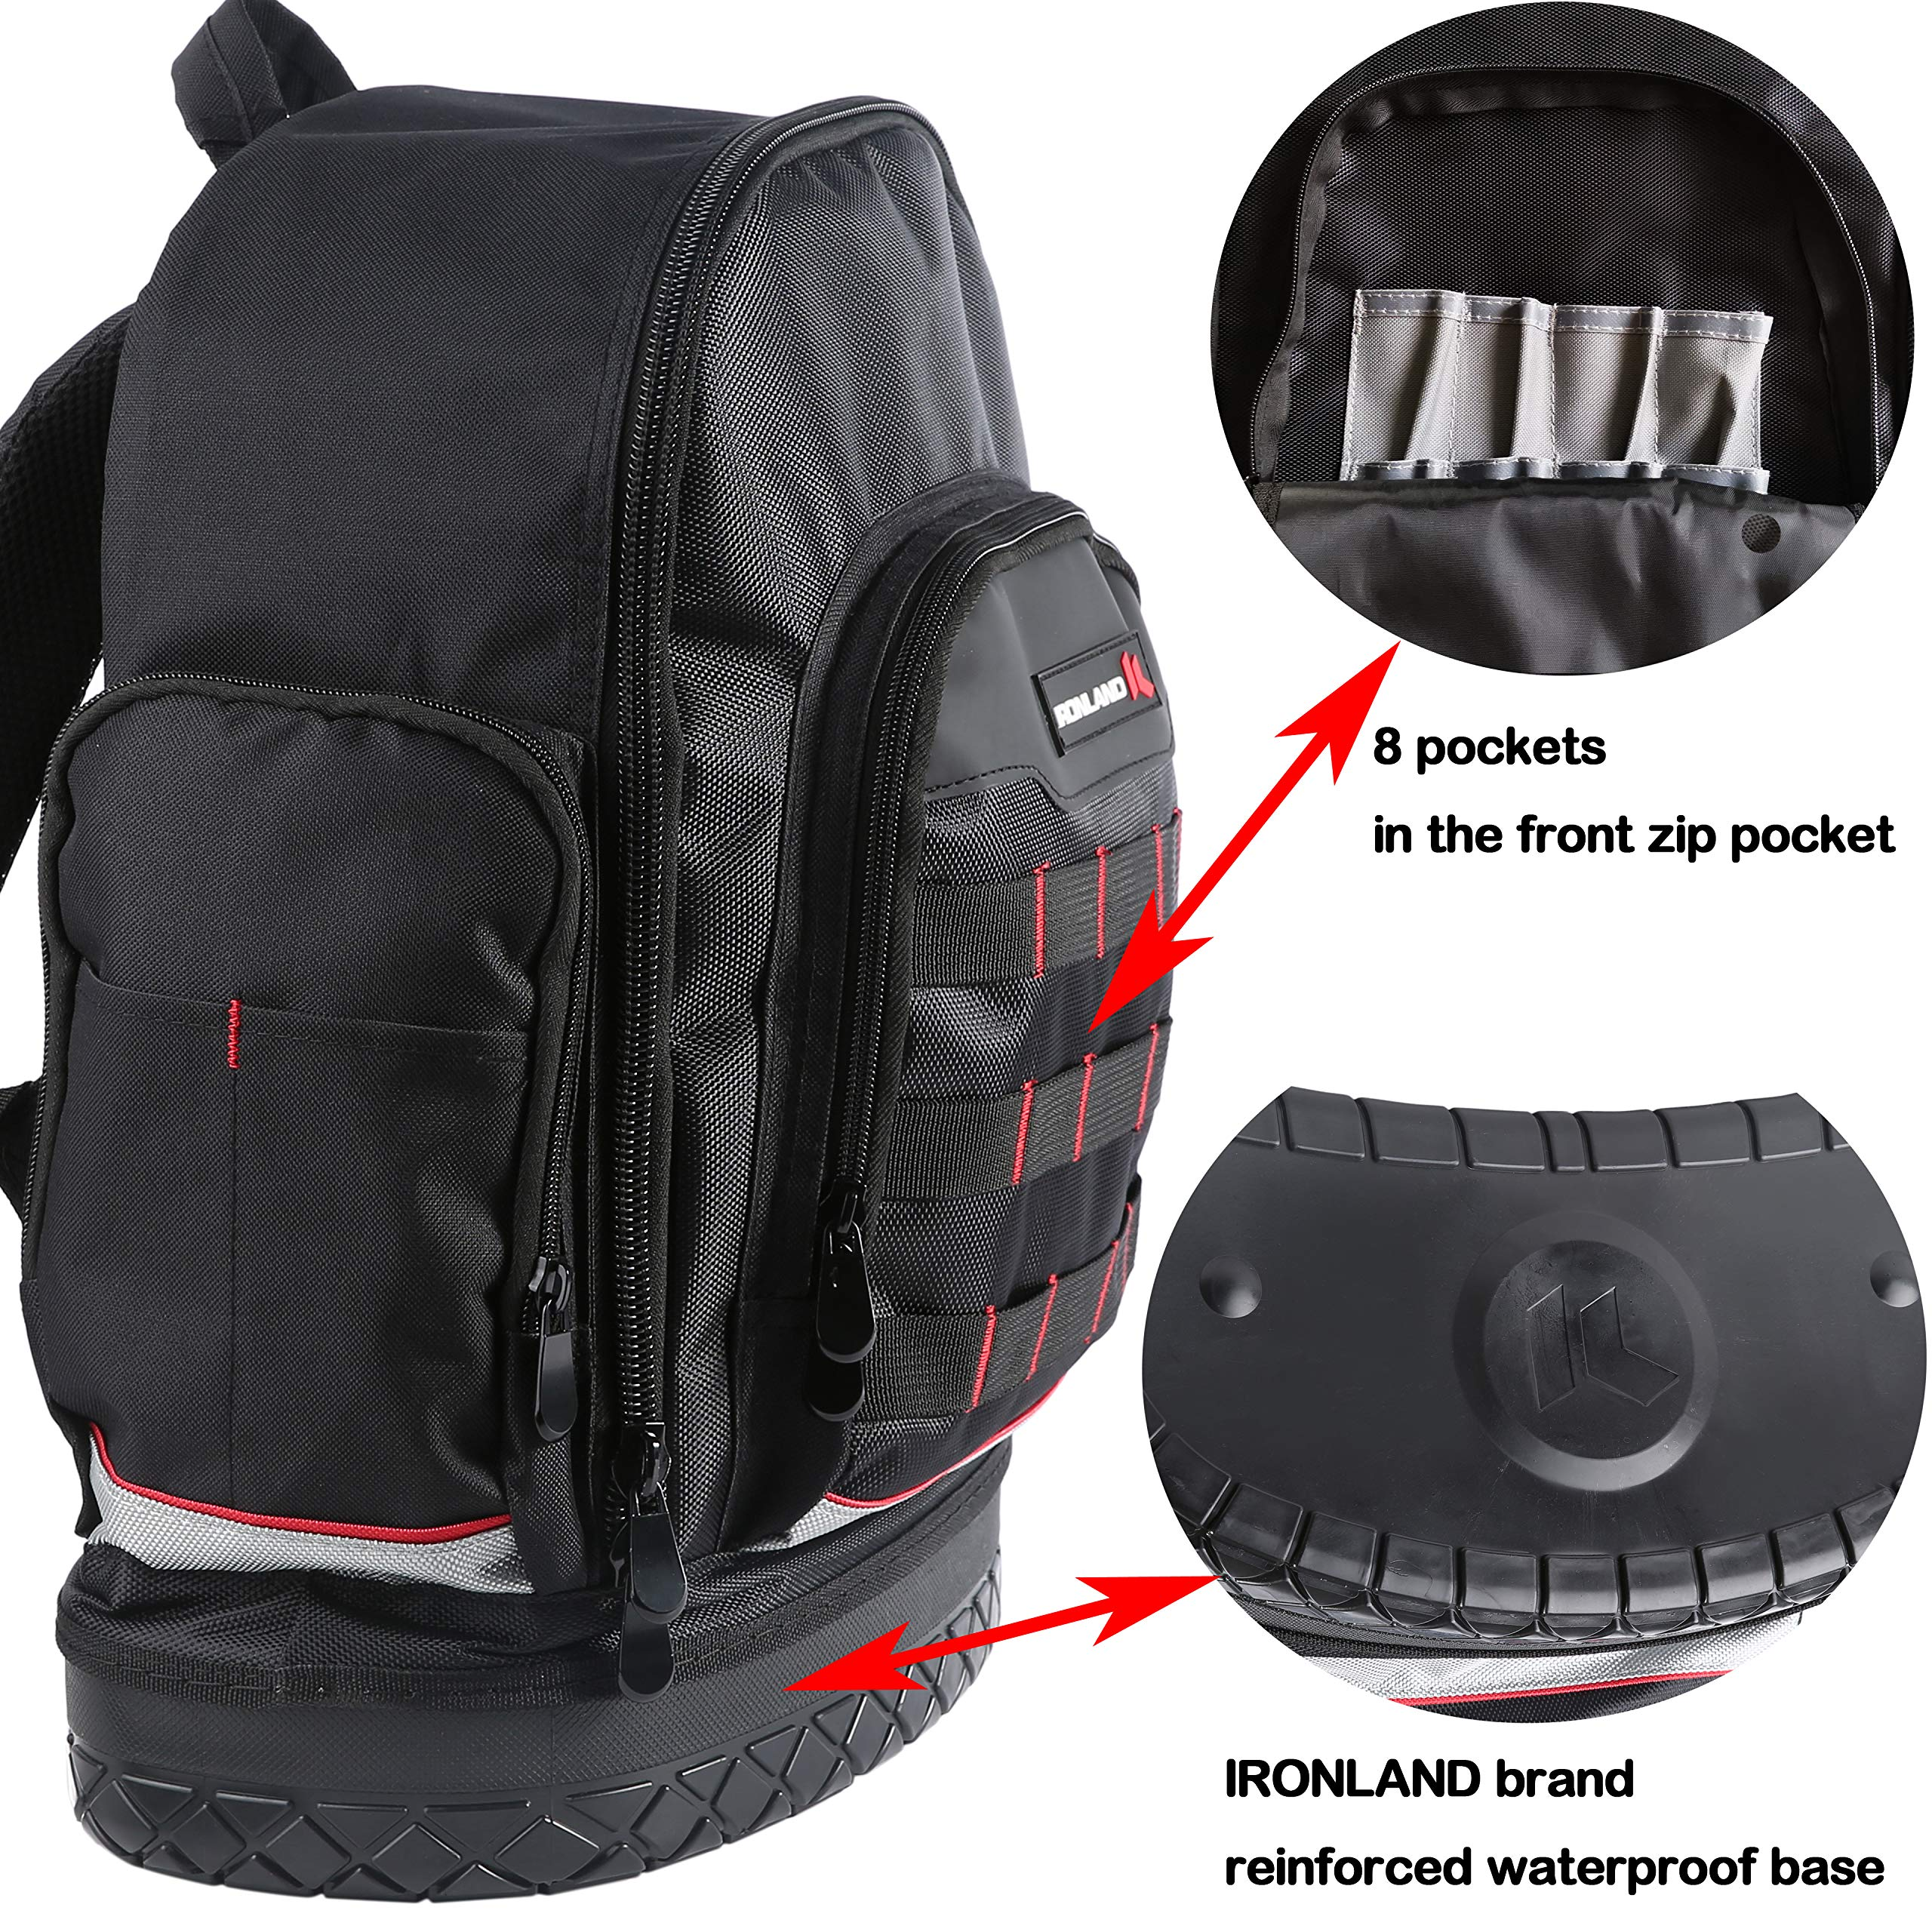 Electrician Tool Bag Backpack with Waterproof Molded Base, BP-005 by IRONLAND (Image #4)